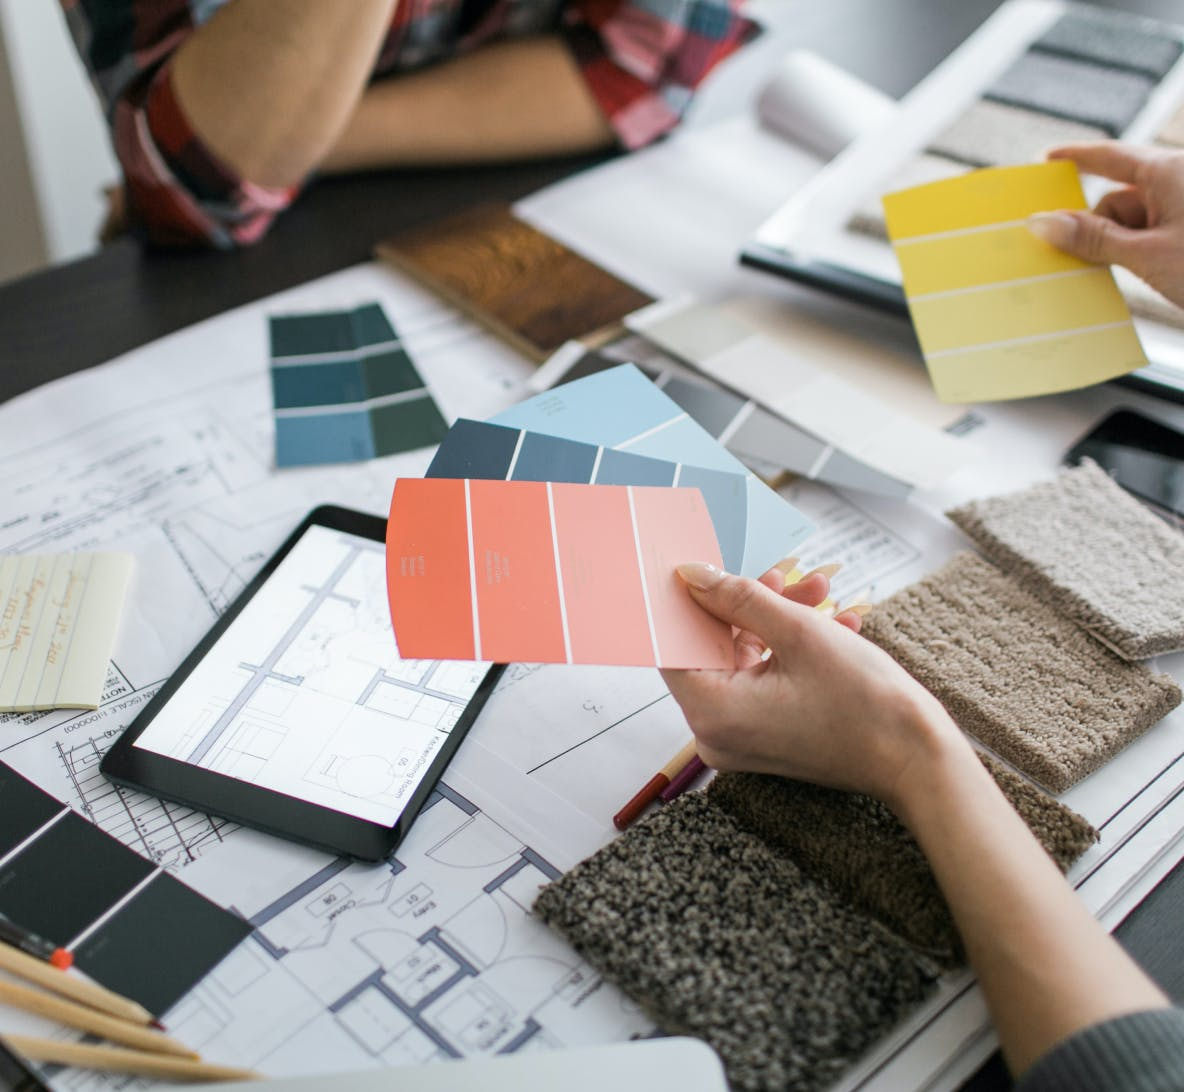 interior designer shows client paint swatches and color options